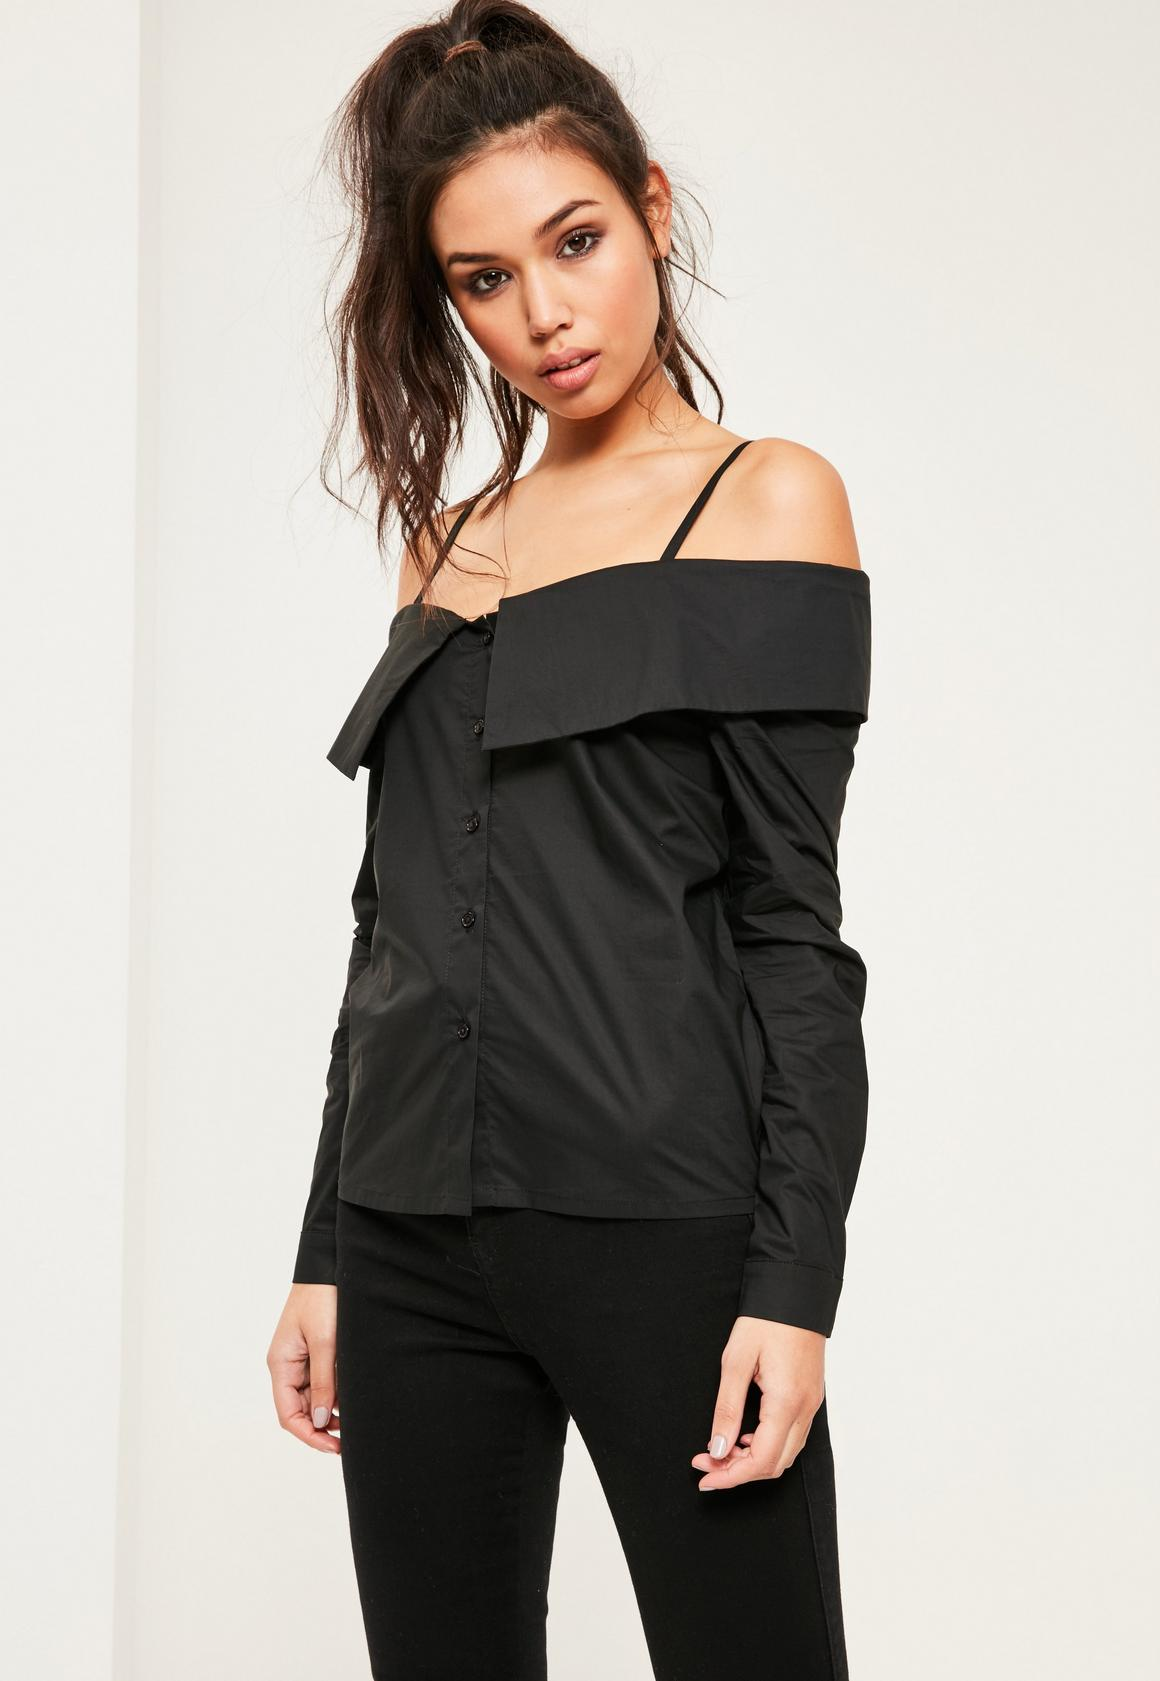 Women's Shirts | White, Oversized & Work Shirts - Missguided